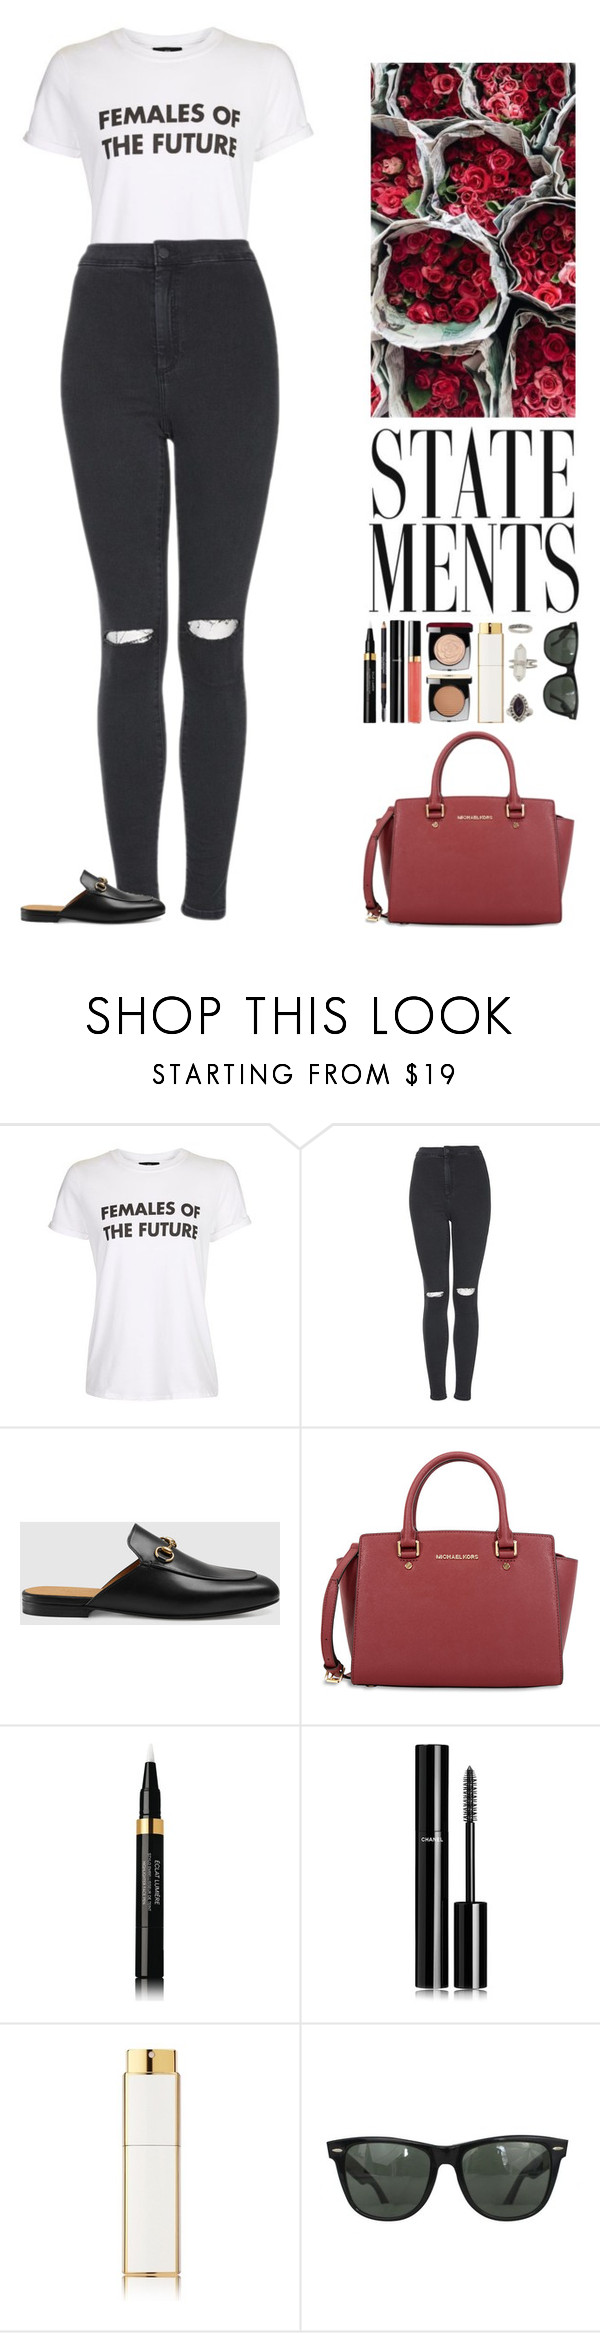 """Elaine."" by noemiecalot ❤ liked on Polyvore featuring Topshop, Gucci, Chanel, Ray-Ban and Miss Selfridge"